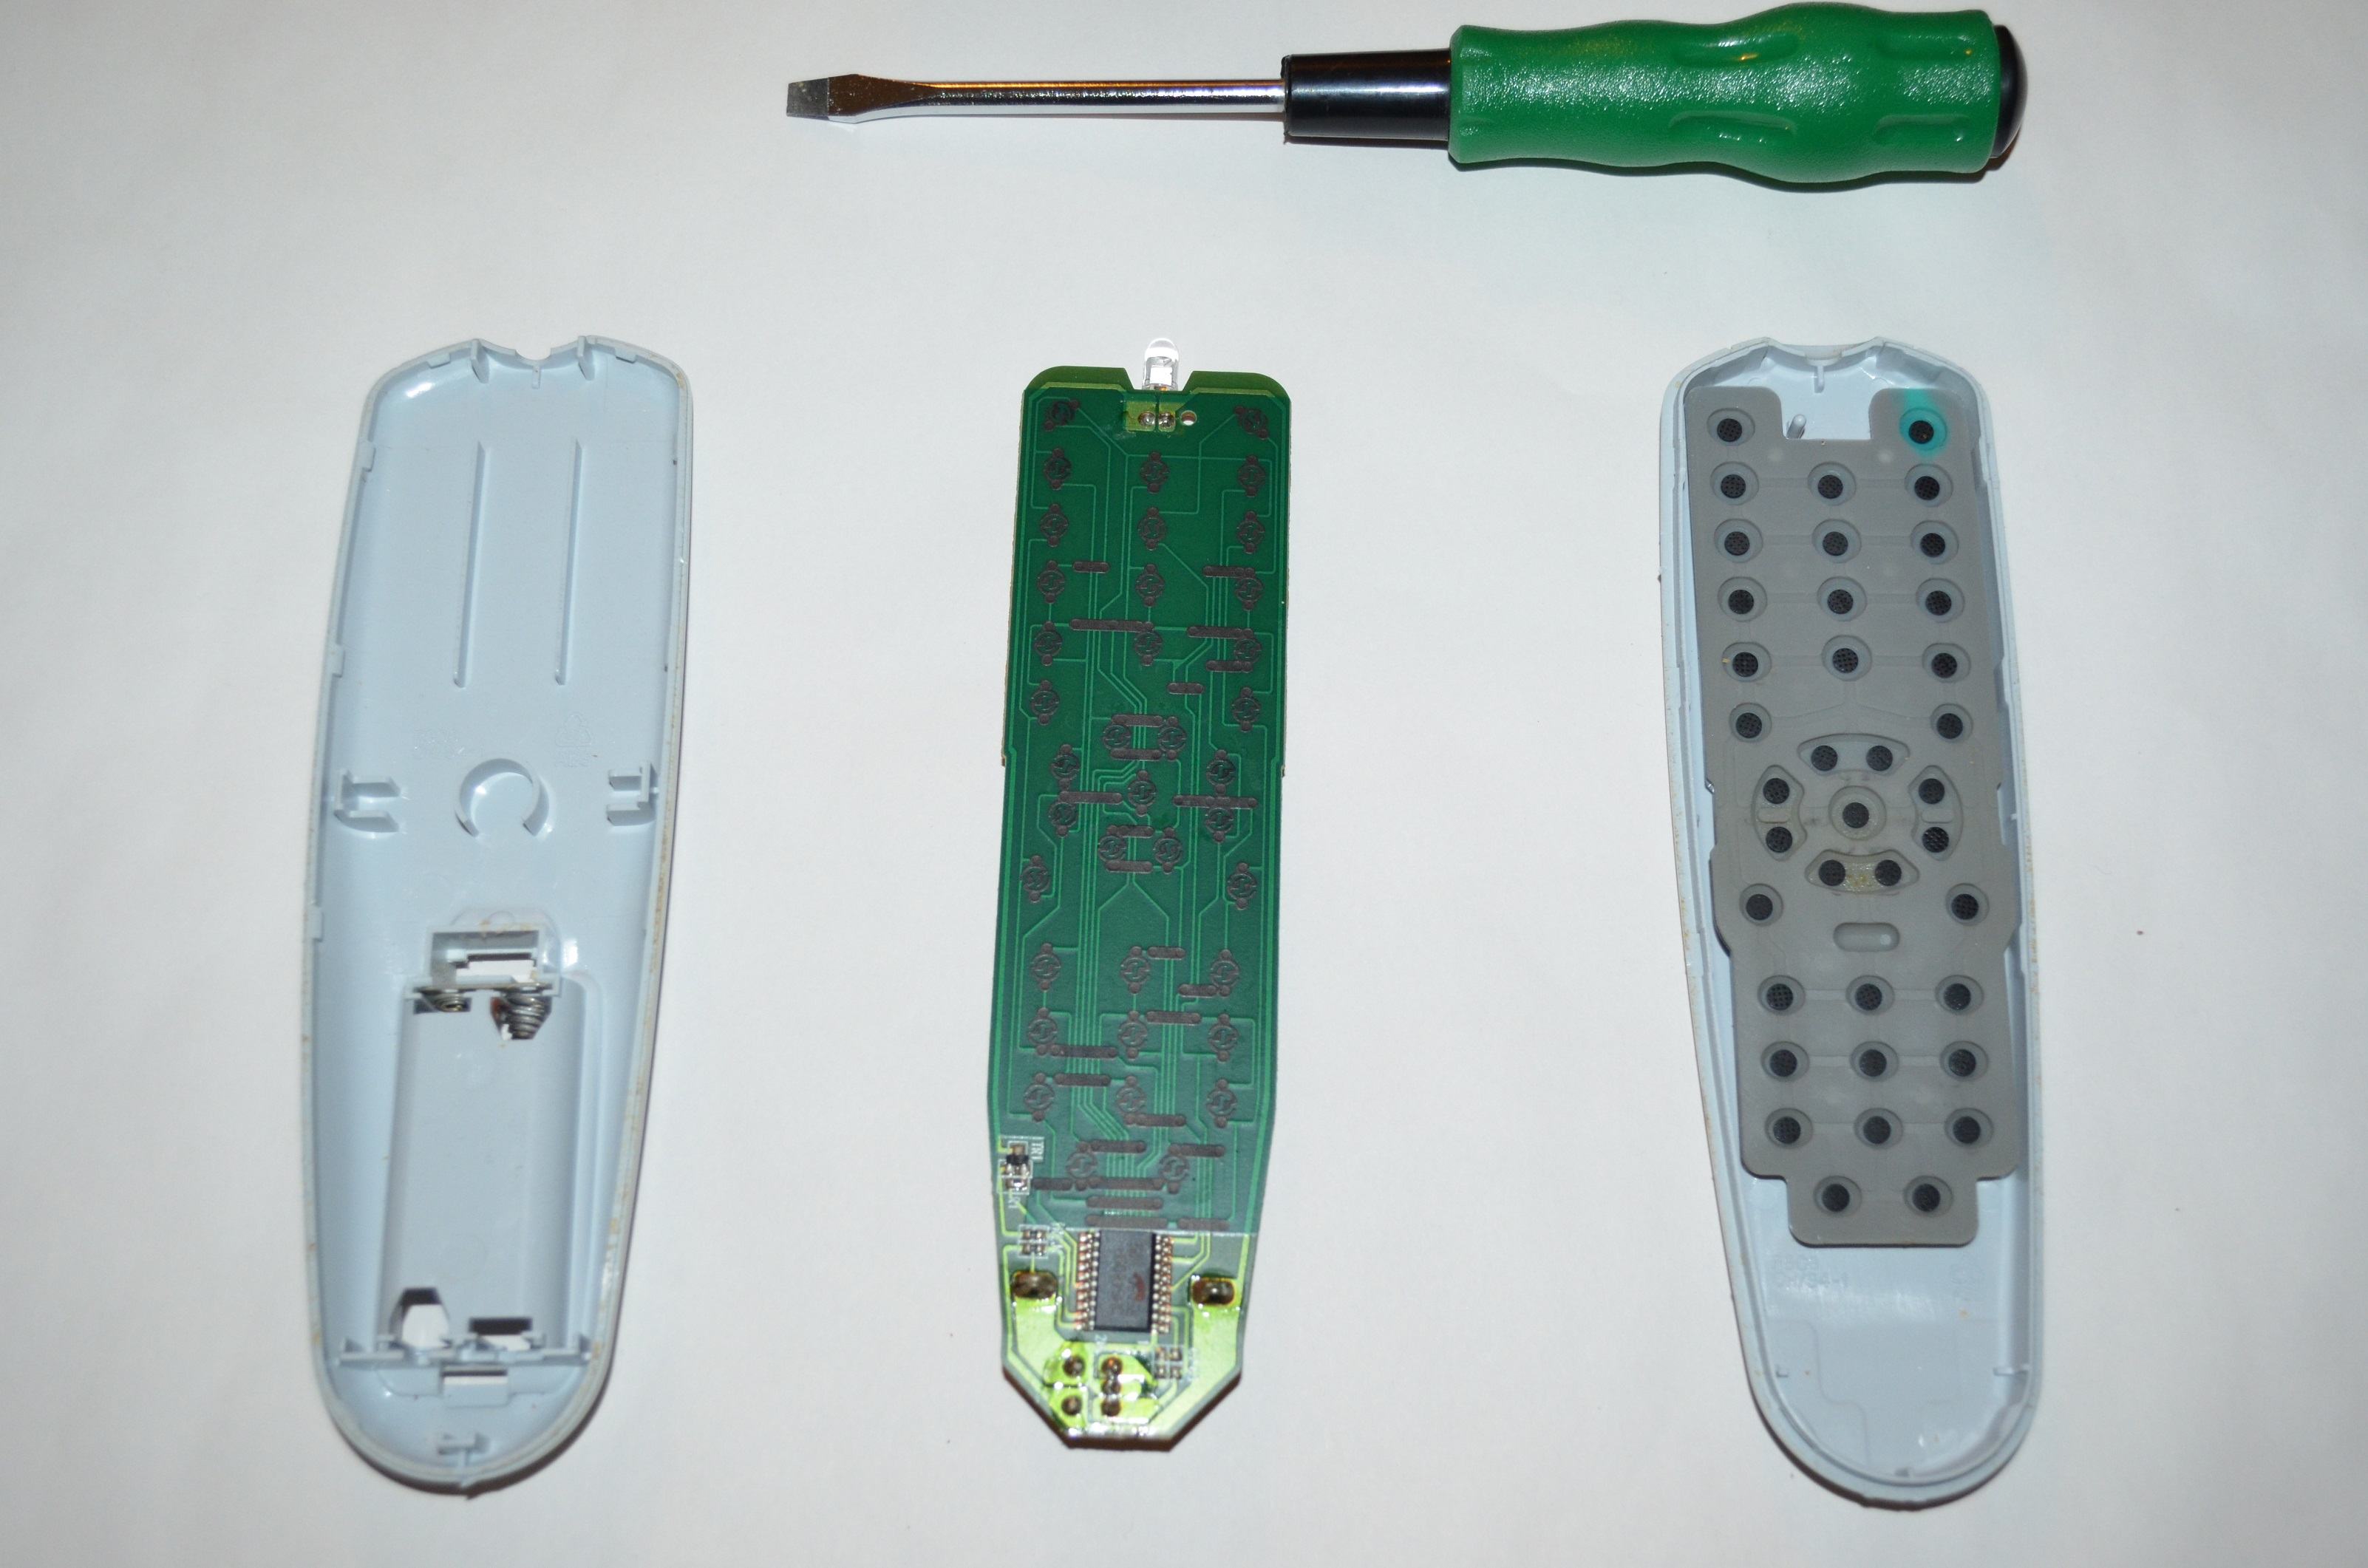 making an ir remote control for a nikon camera \u2013 allyn h lazy bones remote how to pair your roku remote control